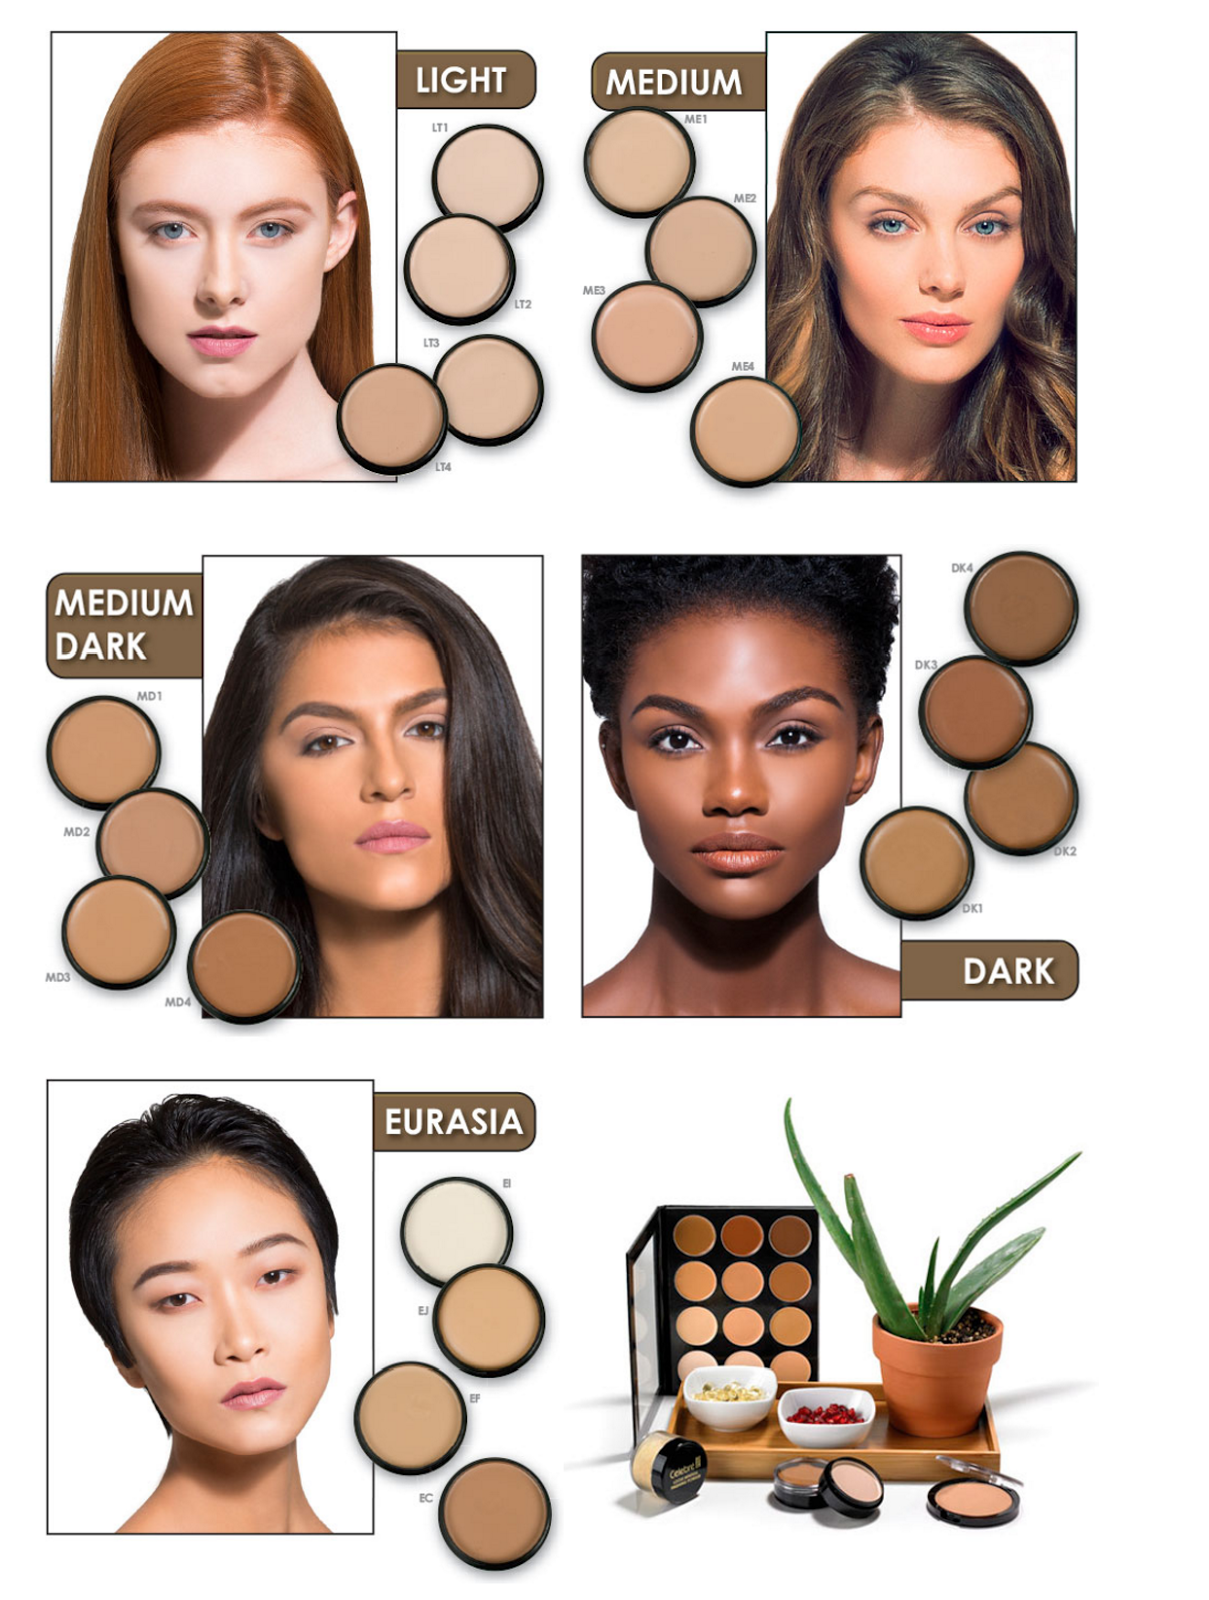 Makeup skin color chart images free any chart examples makeup skin color chart images free any chart examples makeup skin color chart choice image free nvjuhfo Gallery